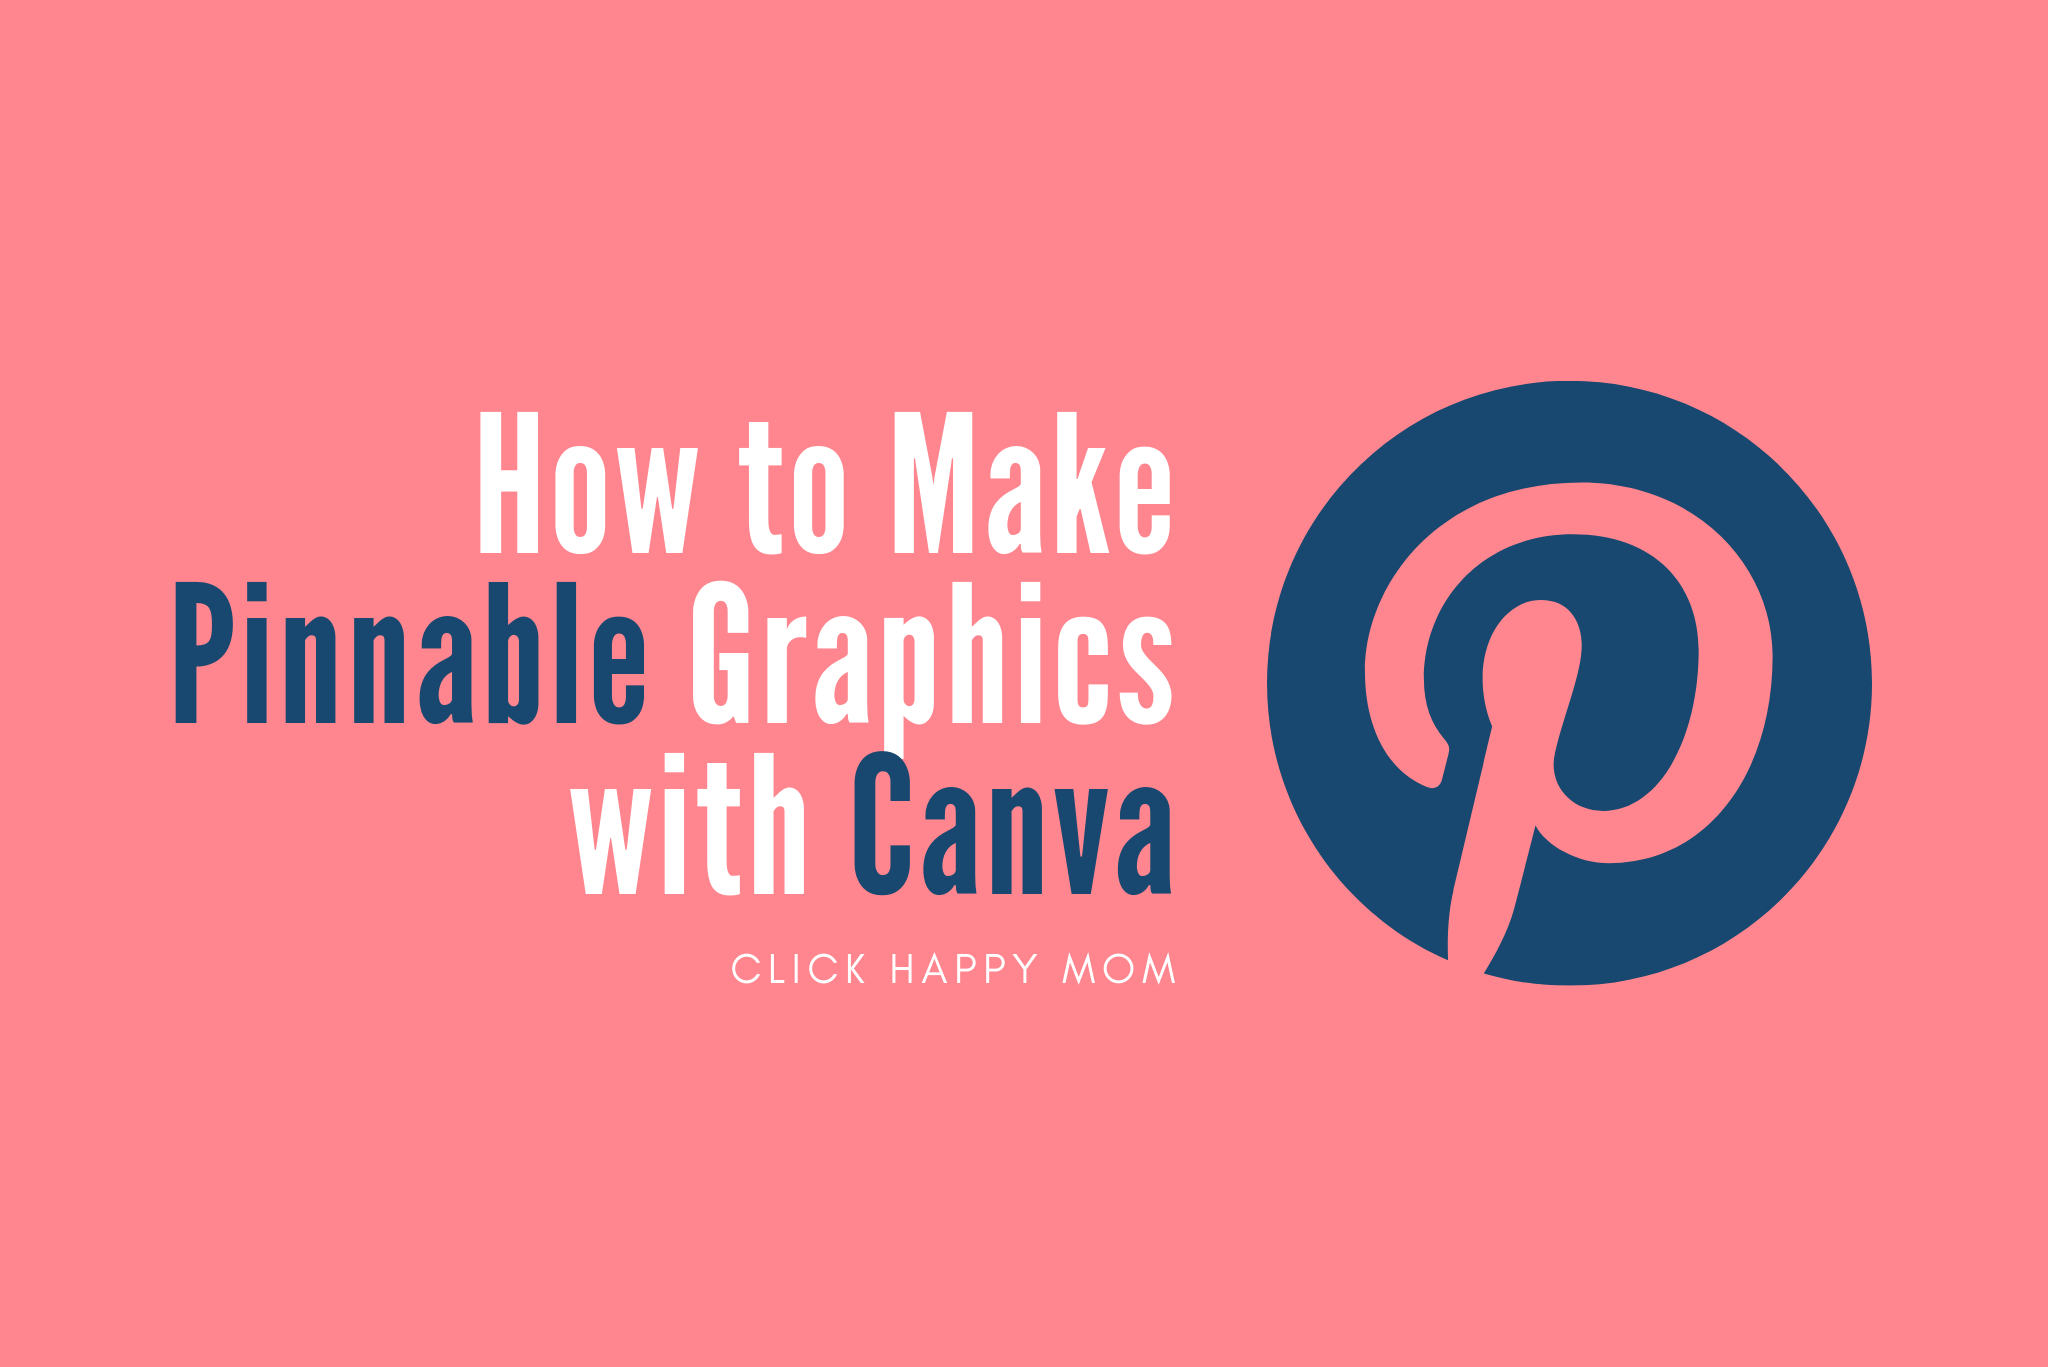 How to Make Pinnable Graphics using Canva